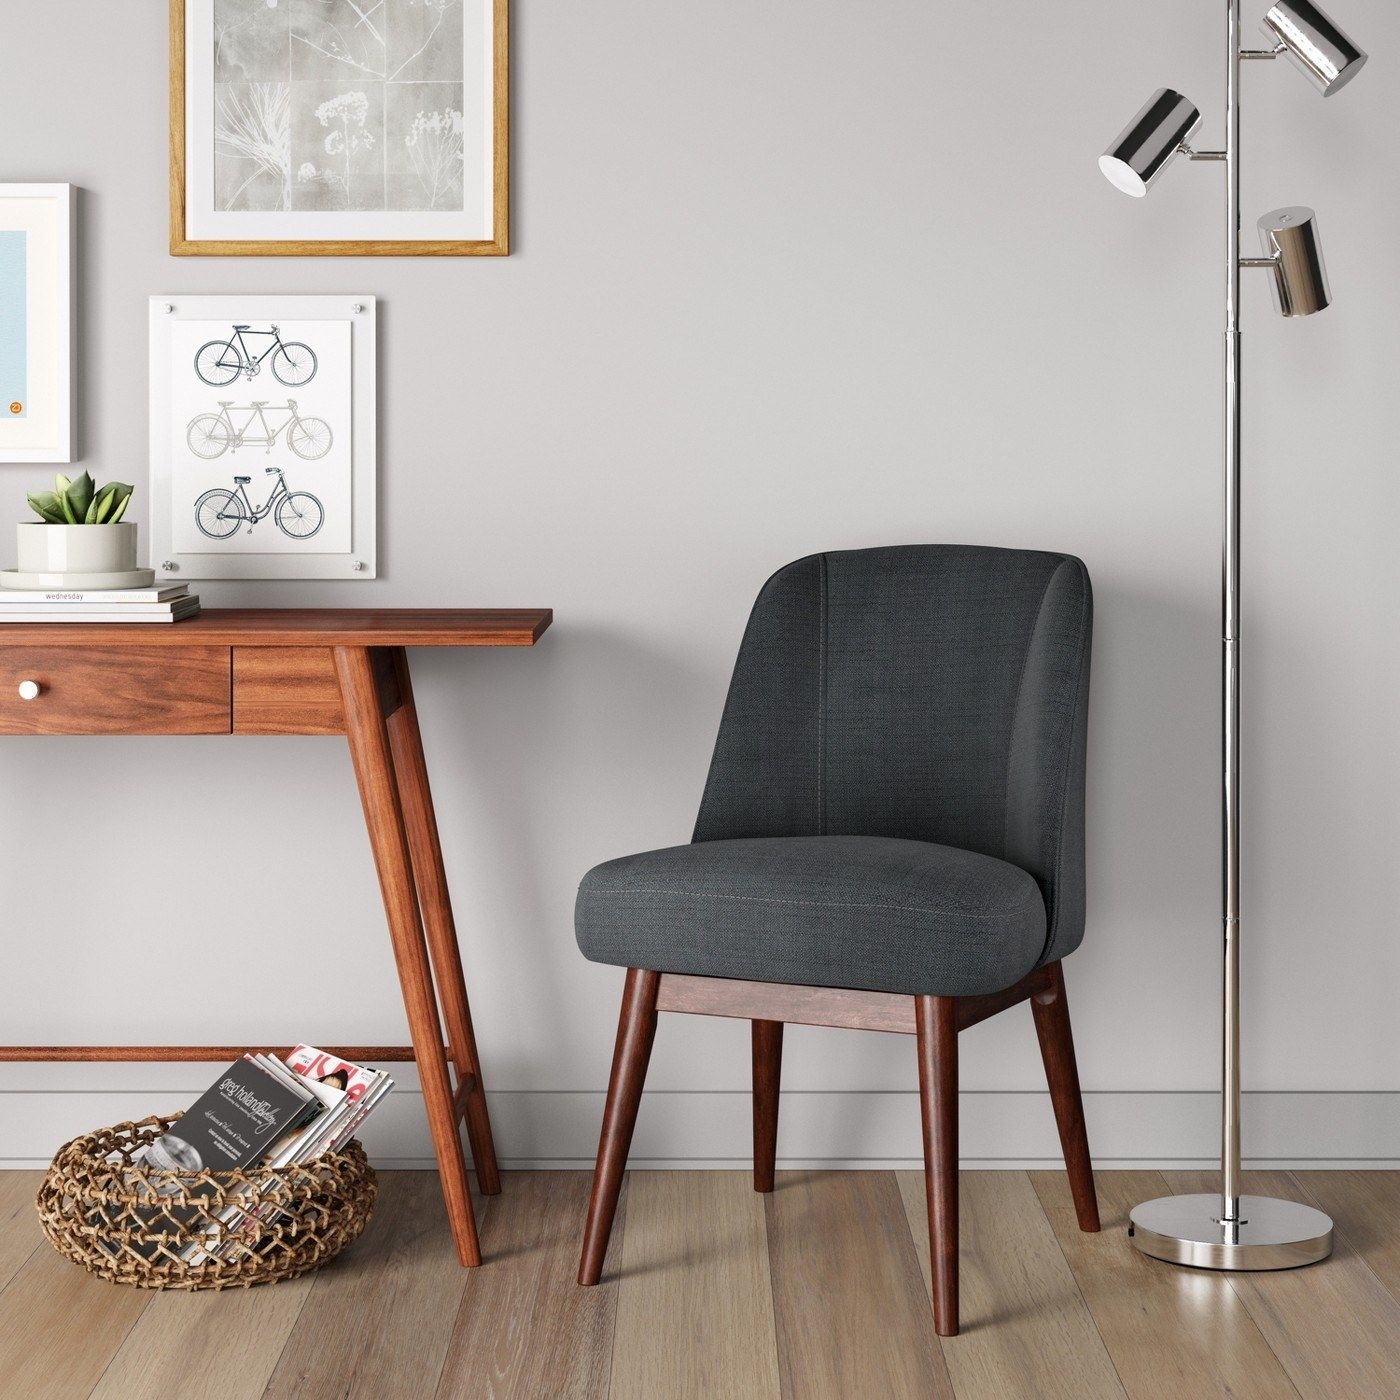 21 pieces of furniture under 100 that'll make a room